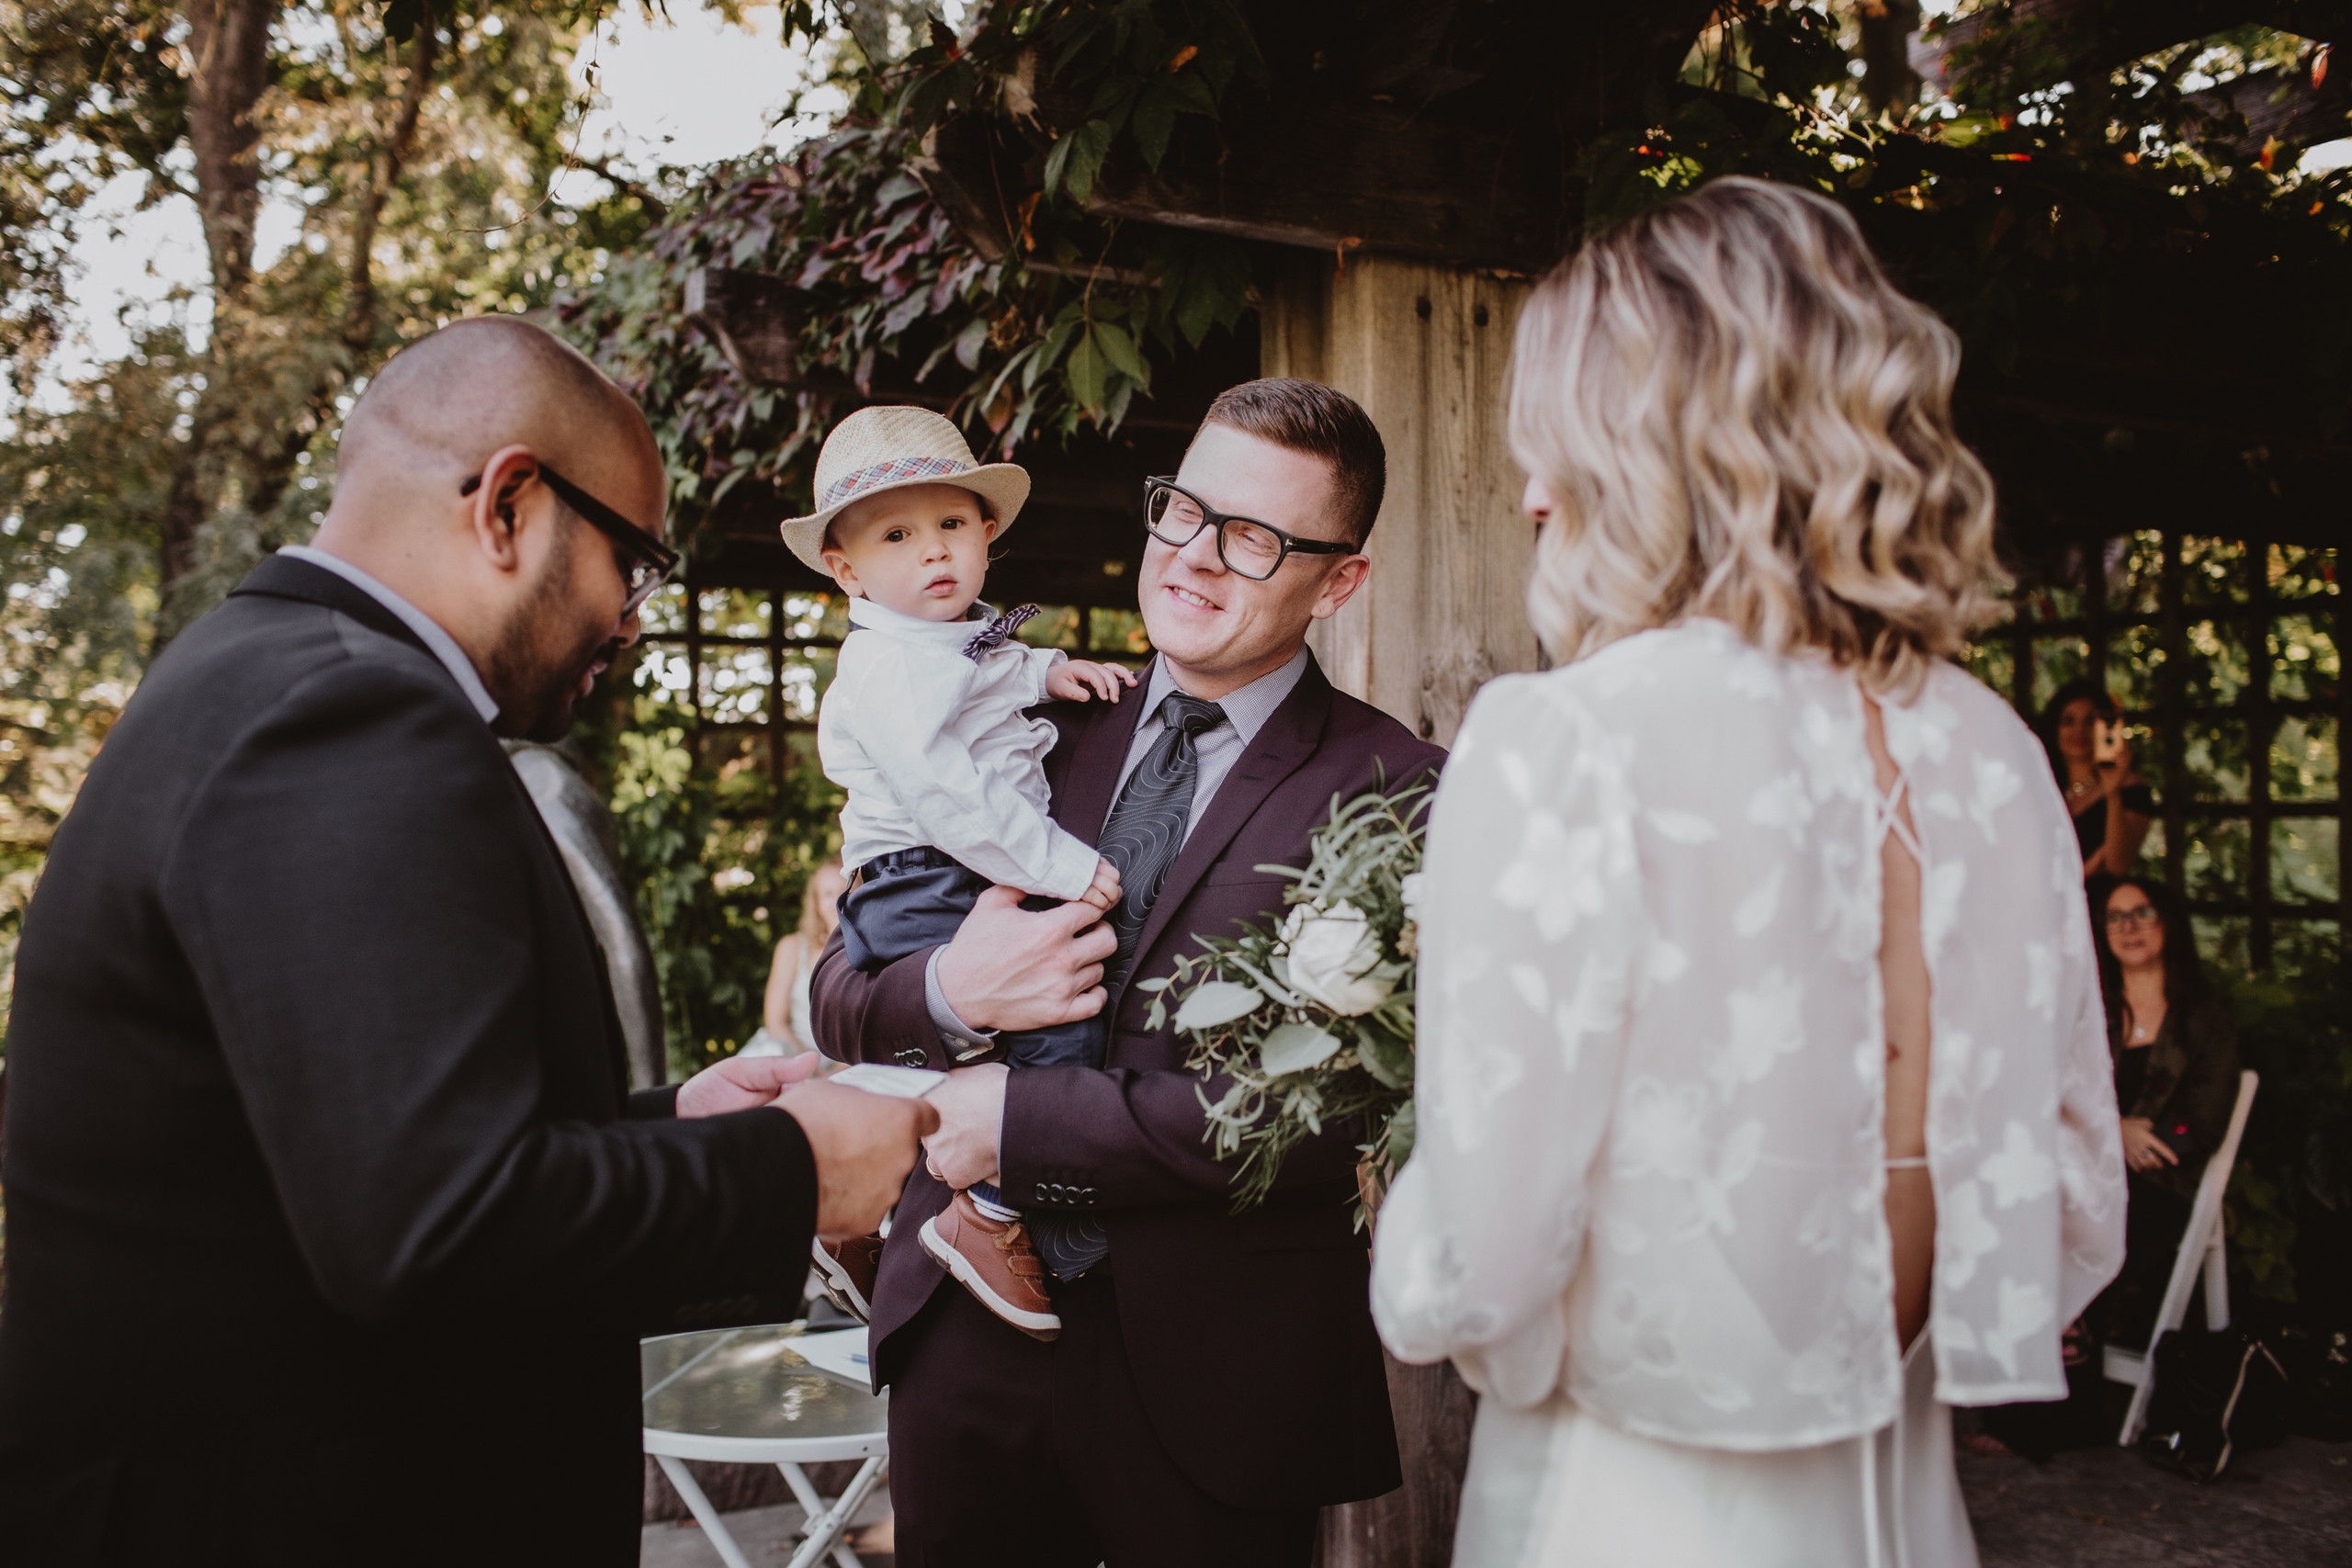 Groom Hold Son during wedding ceremony in Assiniboine Park.